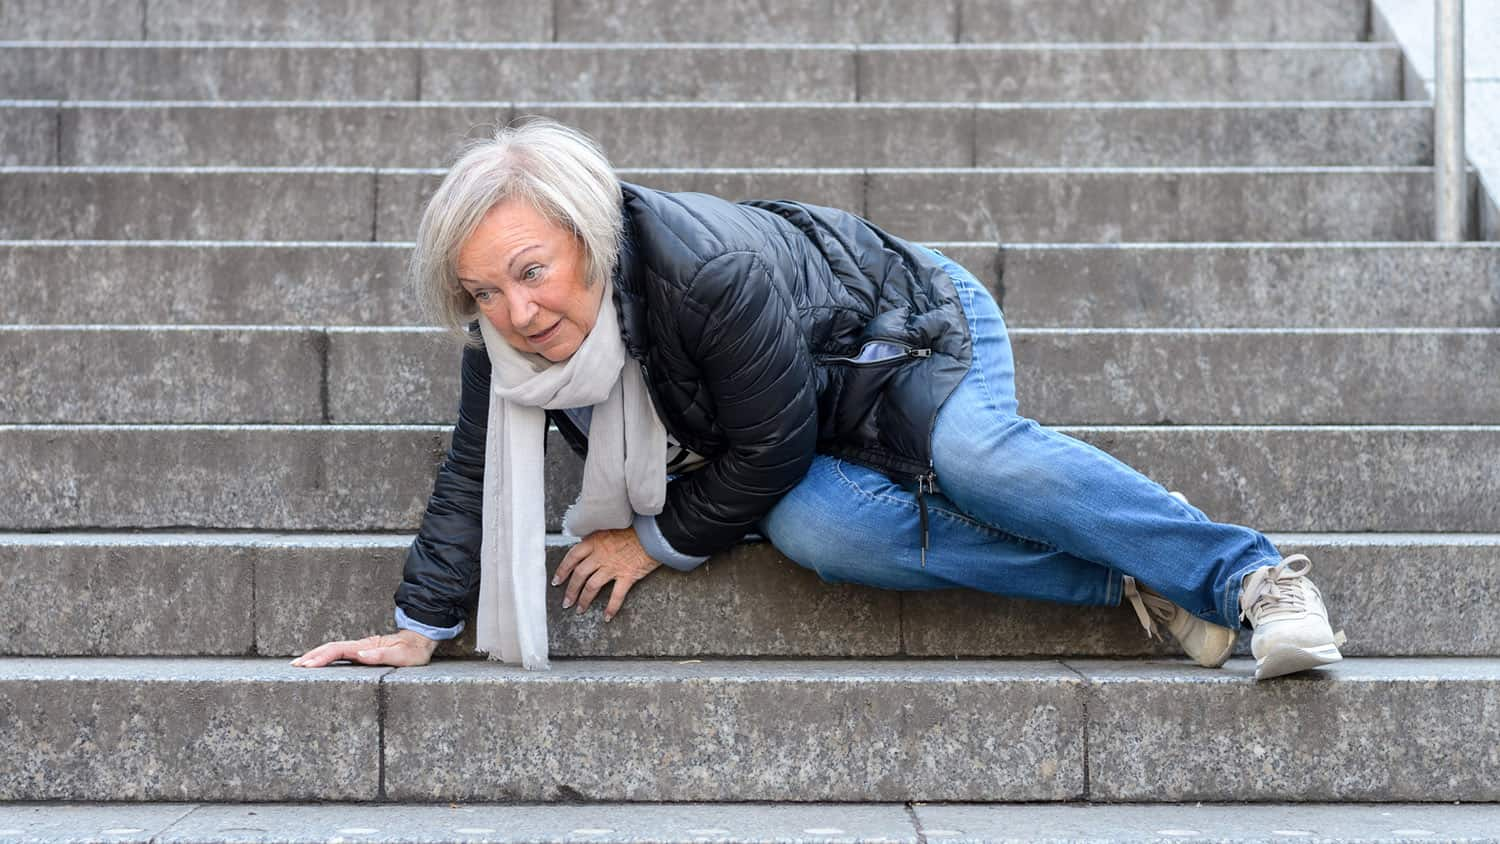 Balance for Seniors: 600,000+ Seniors Die from Falls Each Year… Don't Be a Statistic!